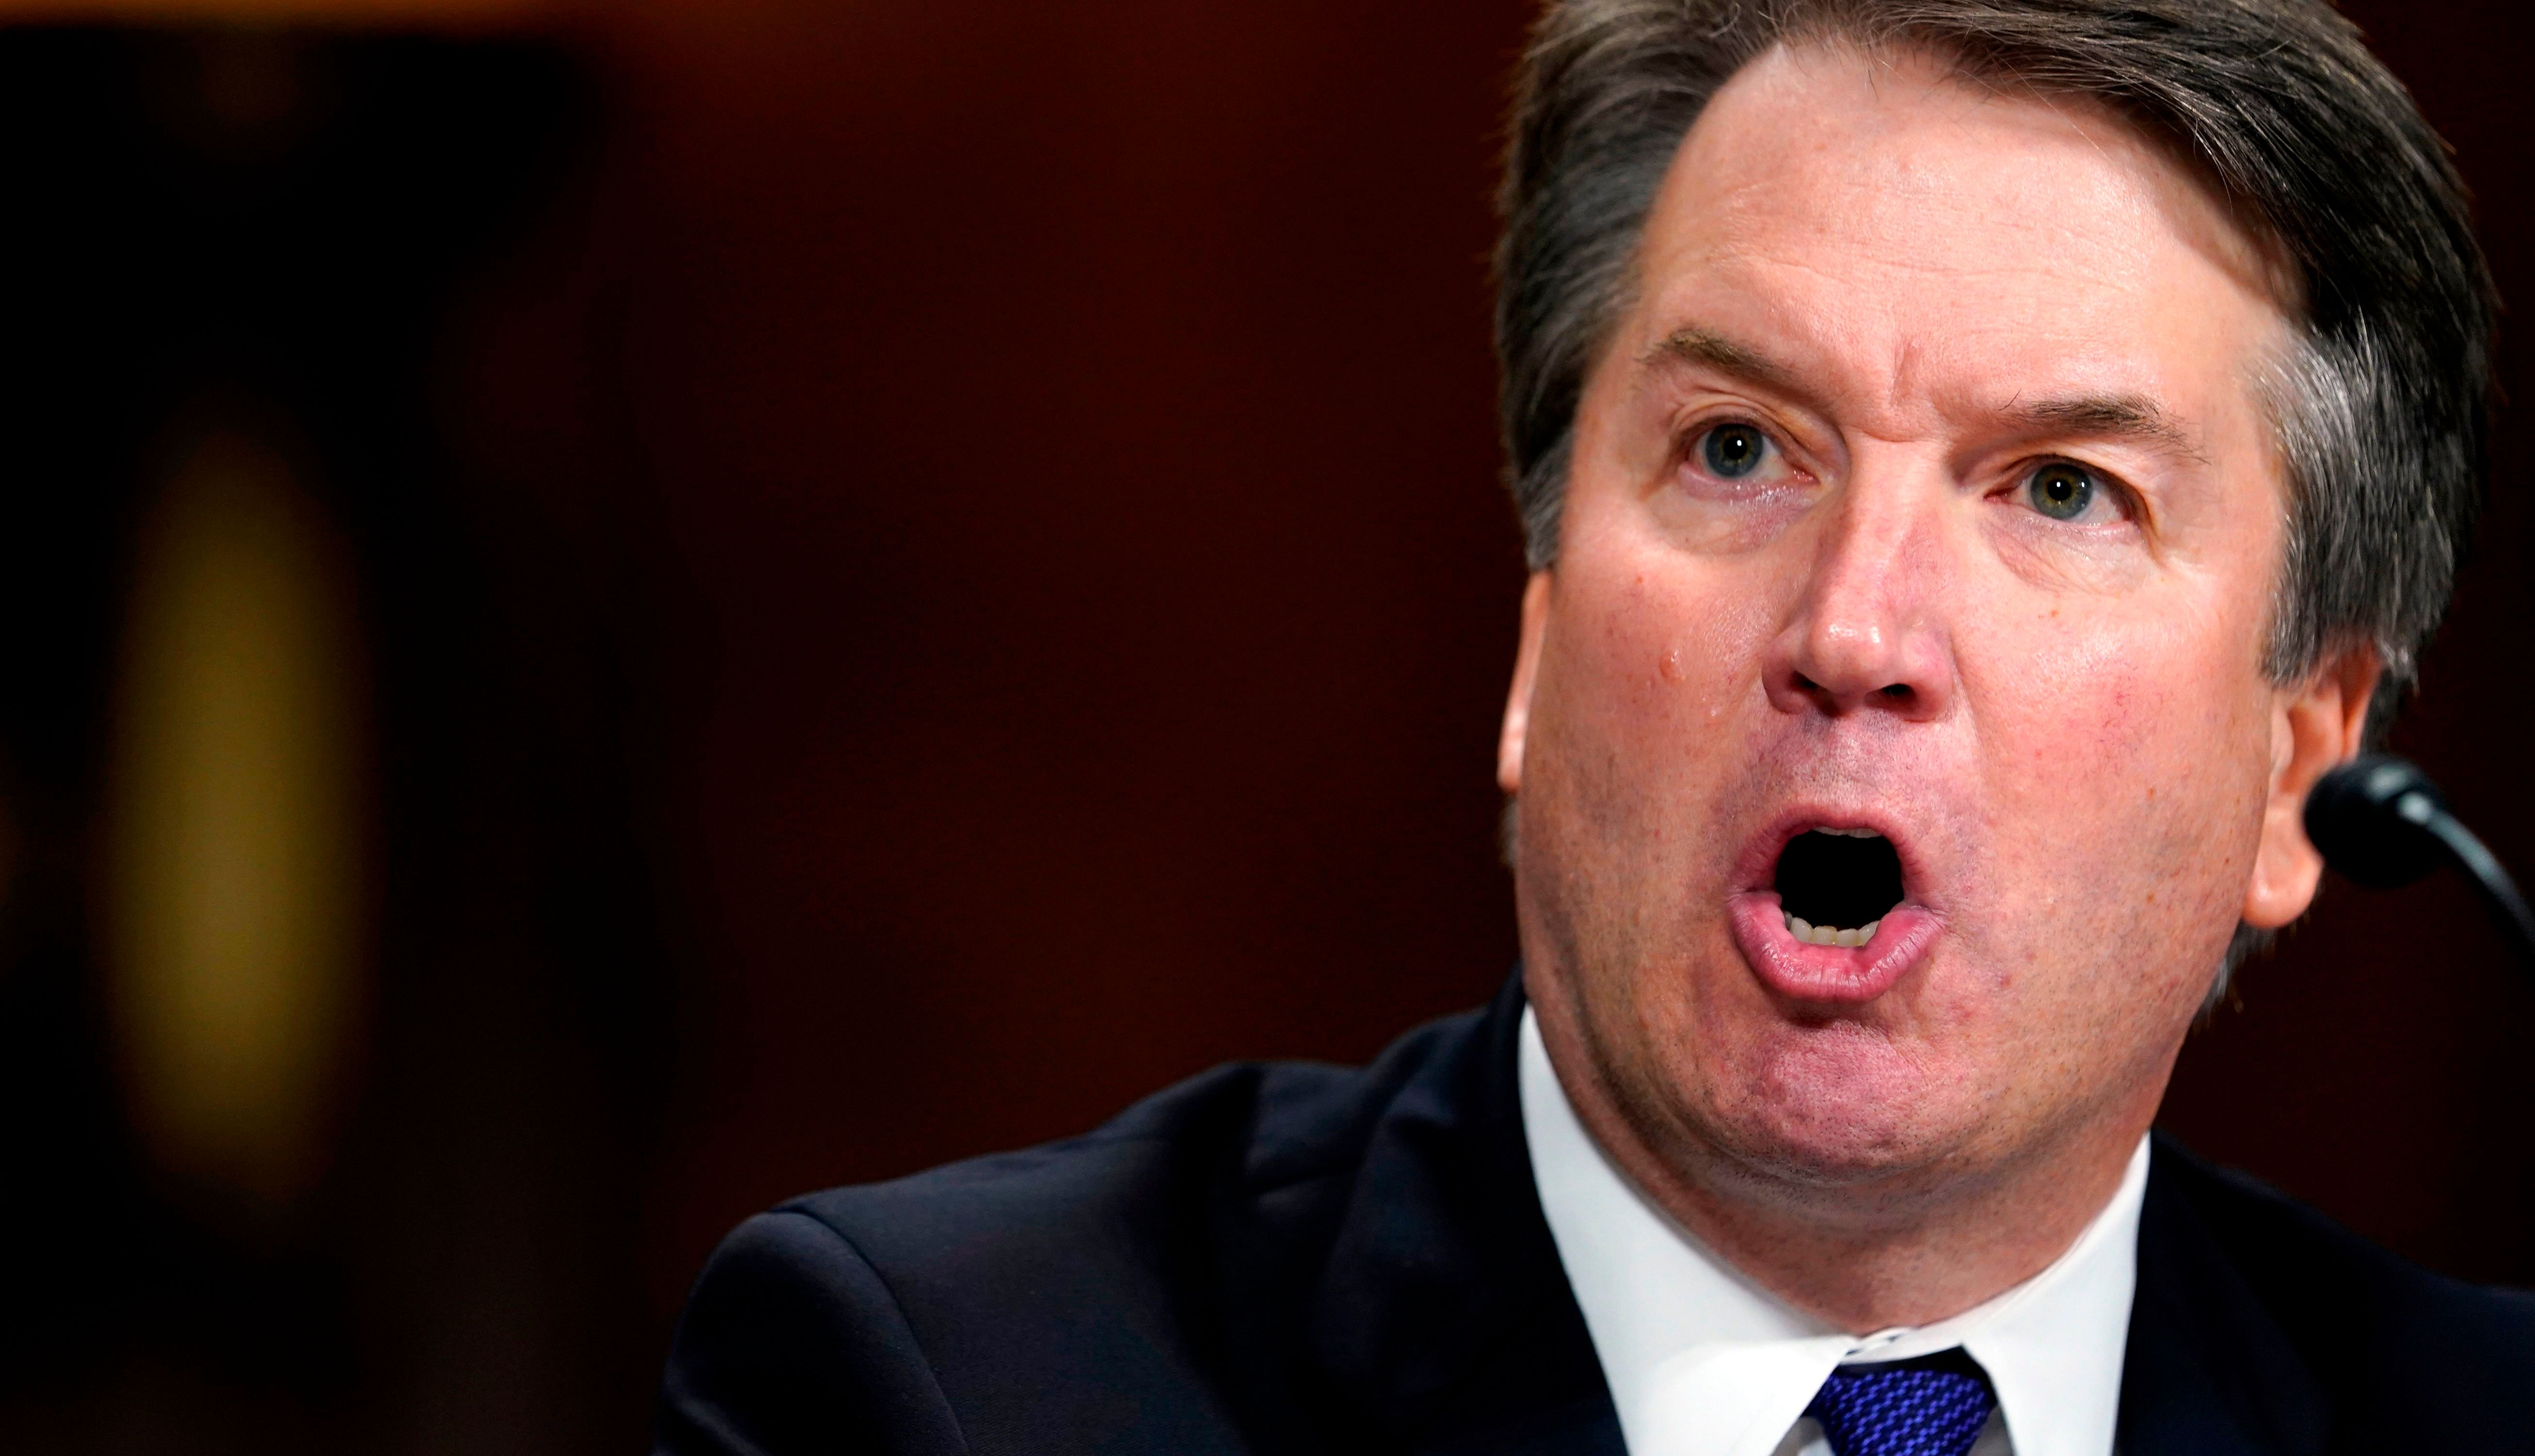 The FBI reached out to 10 people during its dayslong investigation into sexual misconduct allegations against Supreme Court n